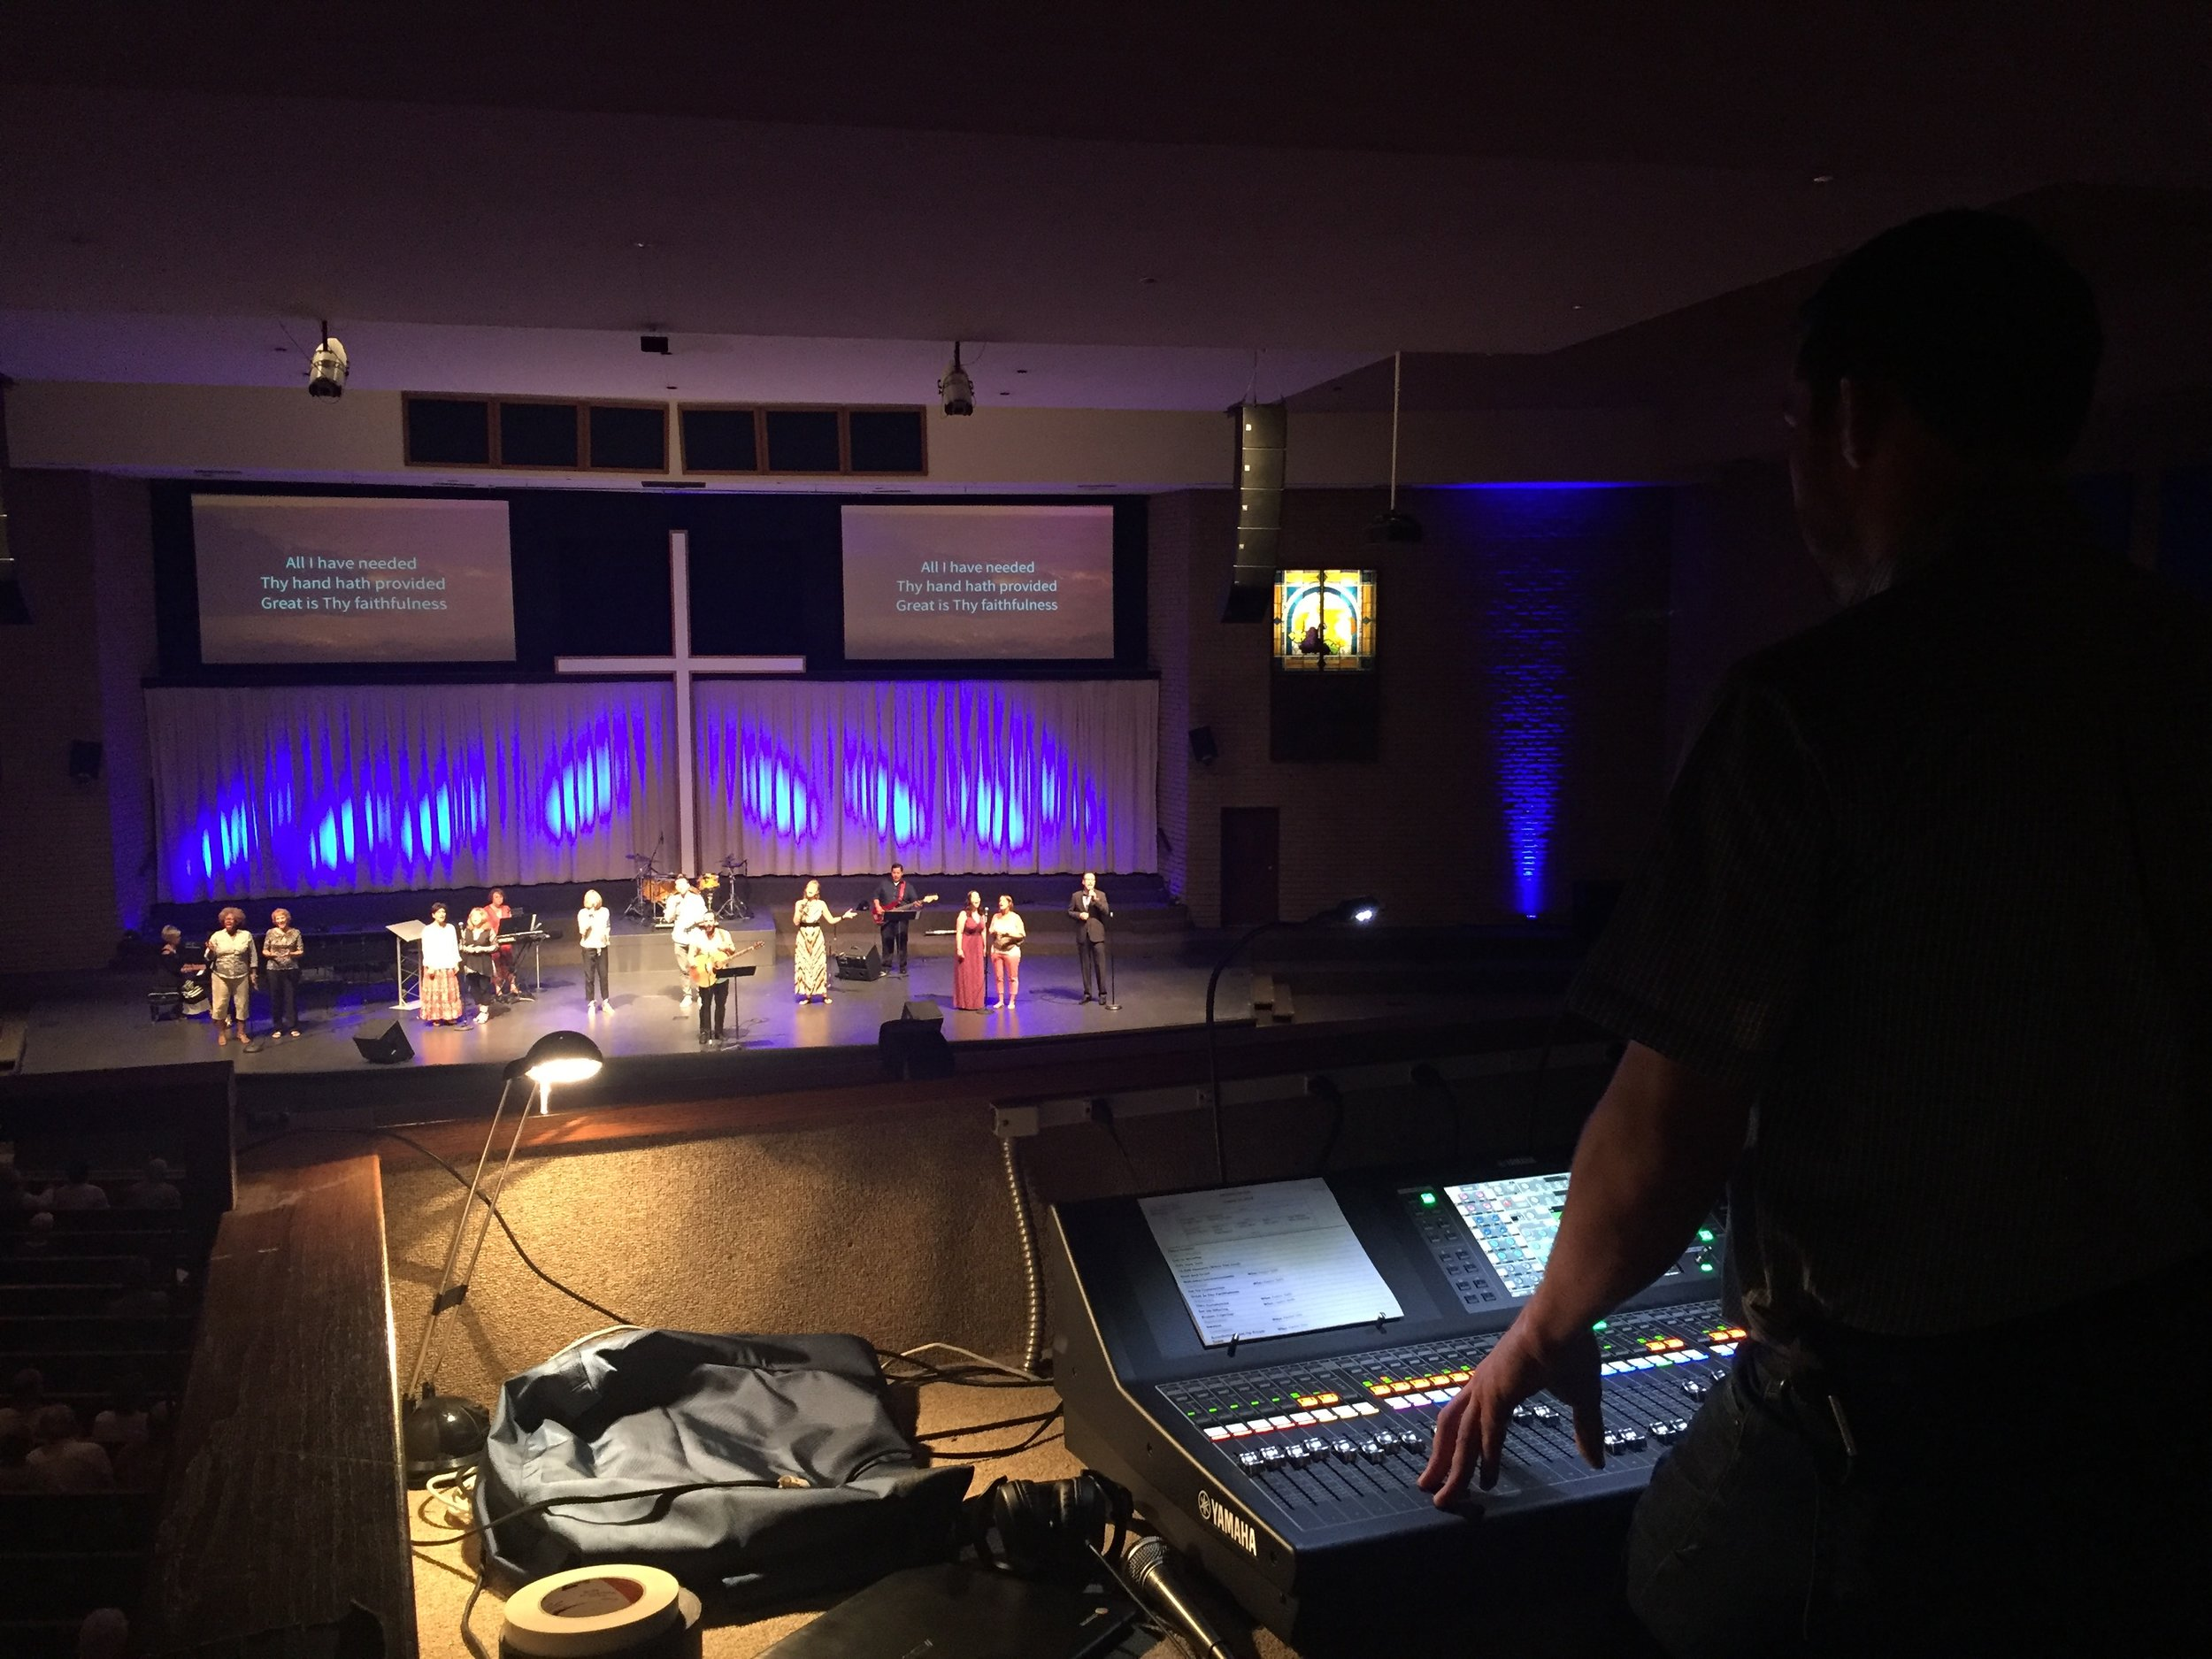 GCC staff running a Yamaha QL5 console to drive the Electro-Voice EVA line-array system.